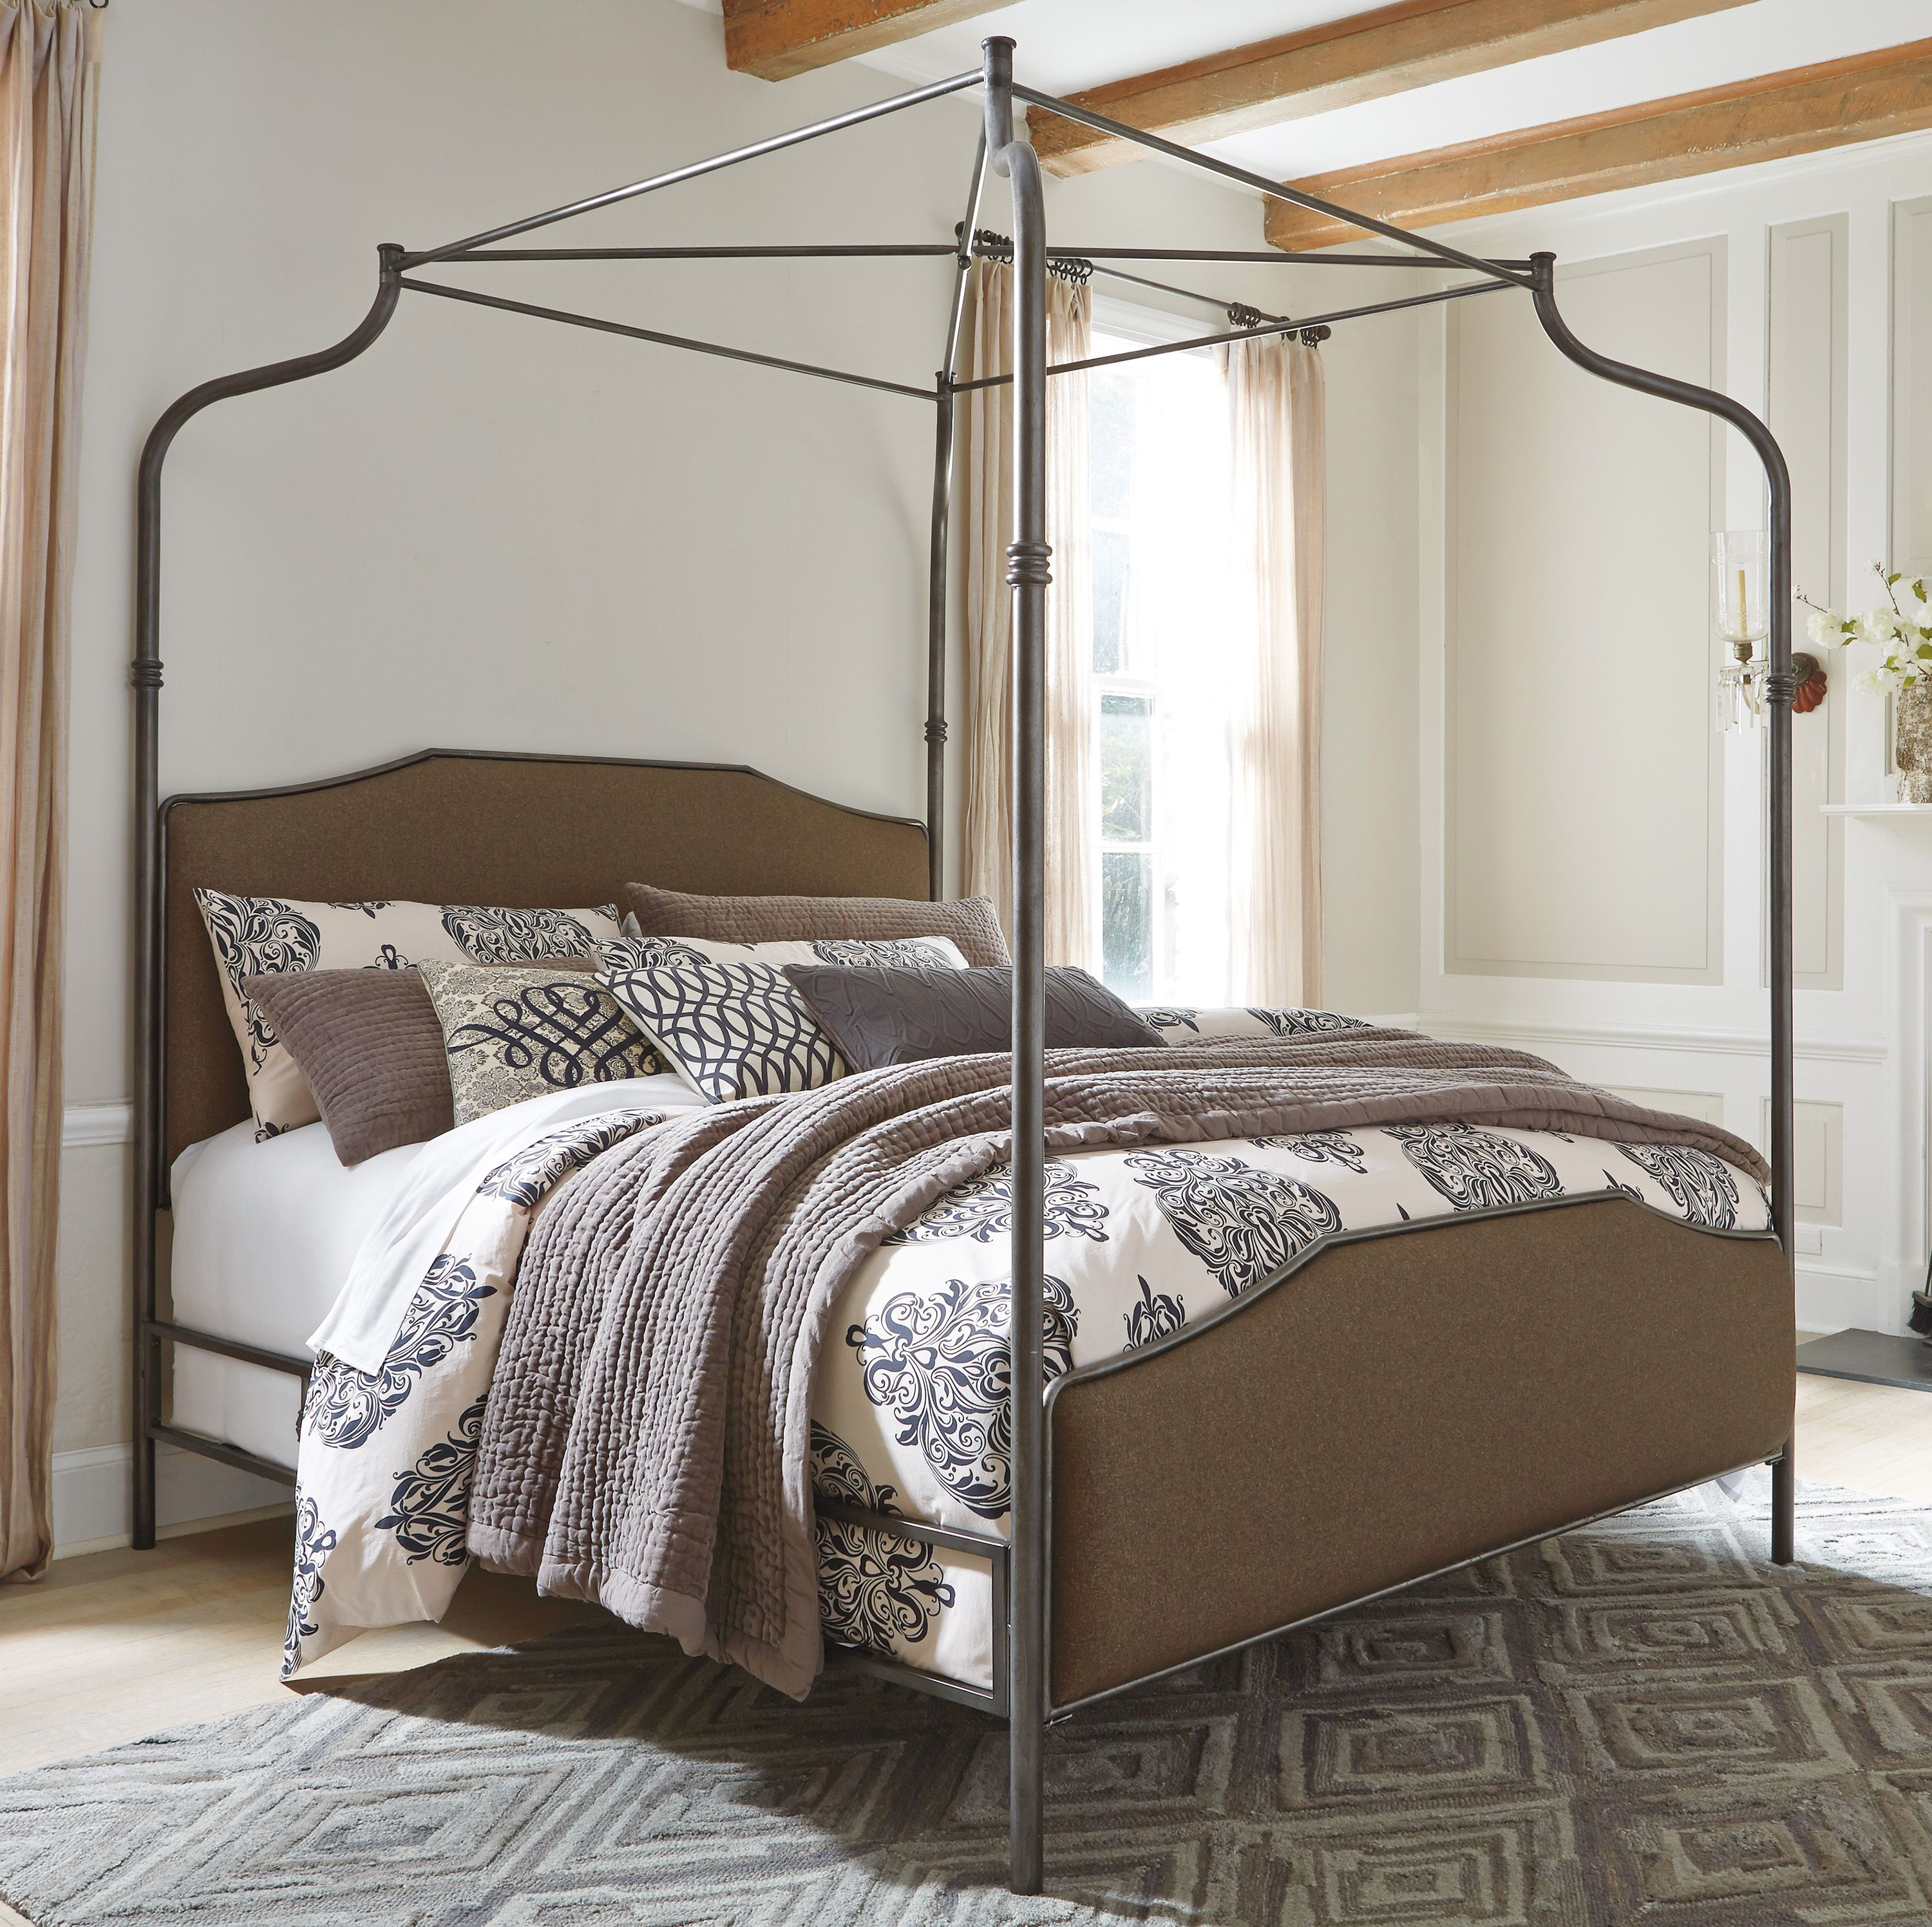 Moriann King Canopy Bed In 2020 Furniture Bed Bed Furniture